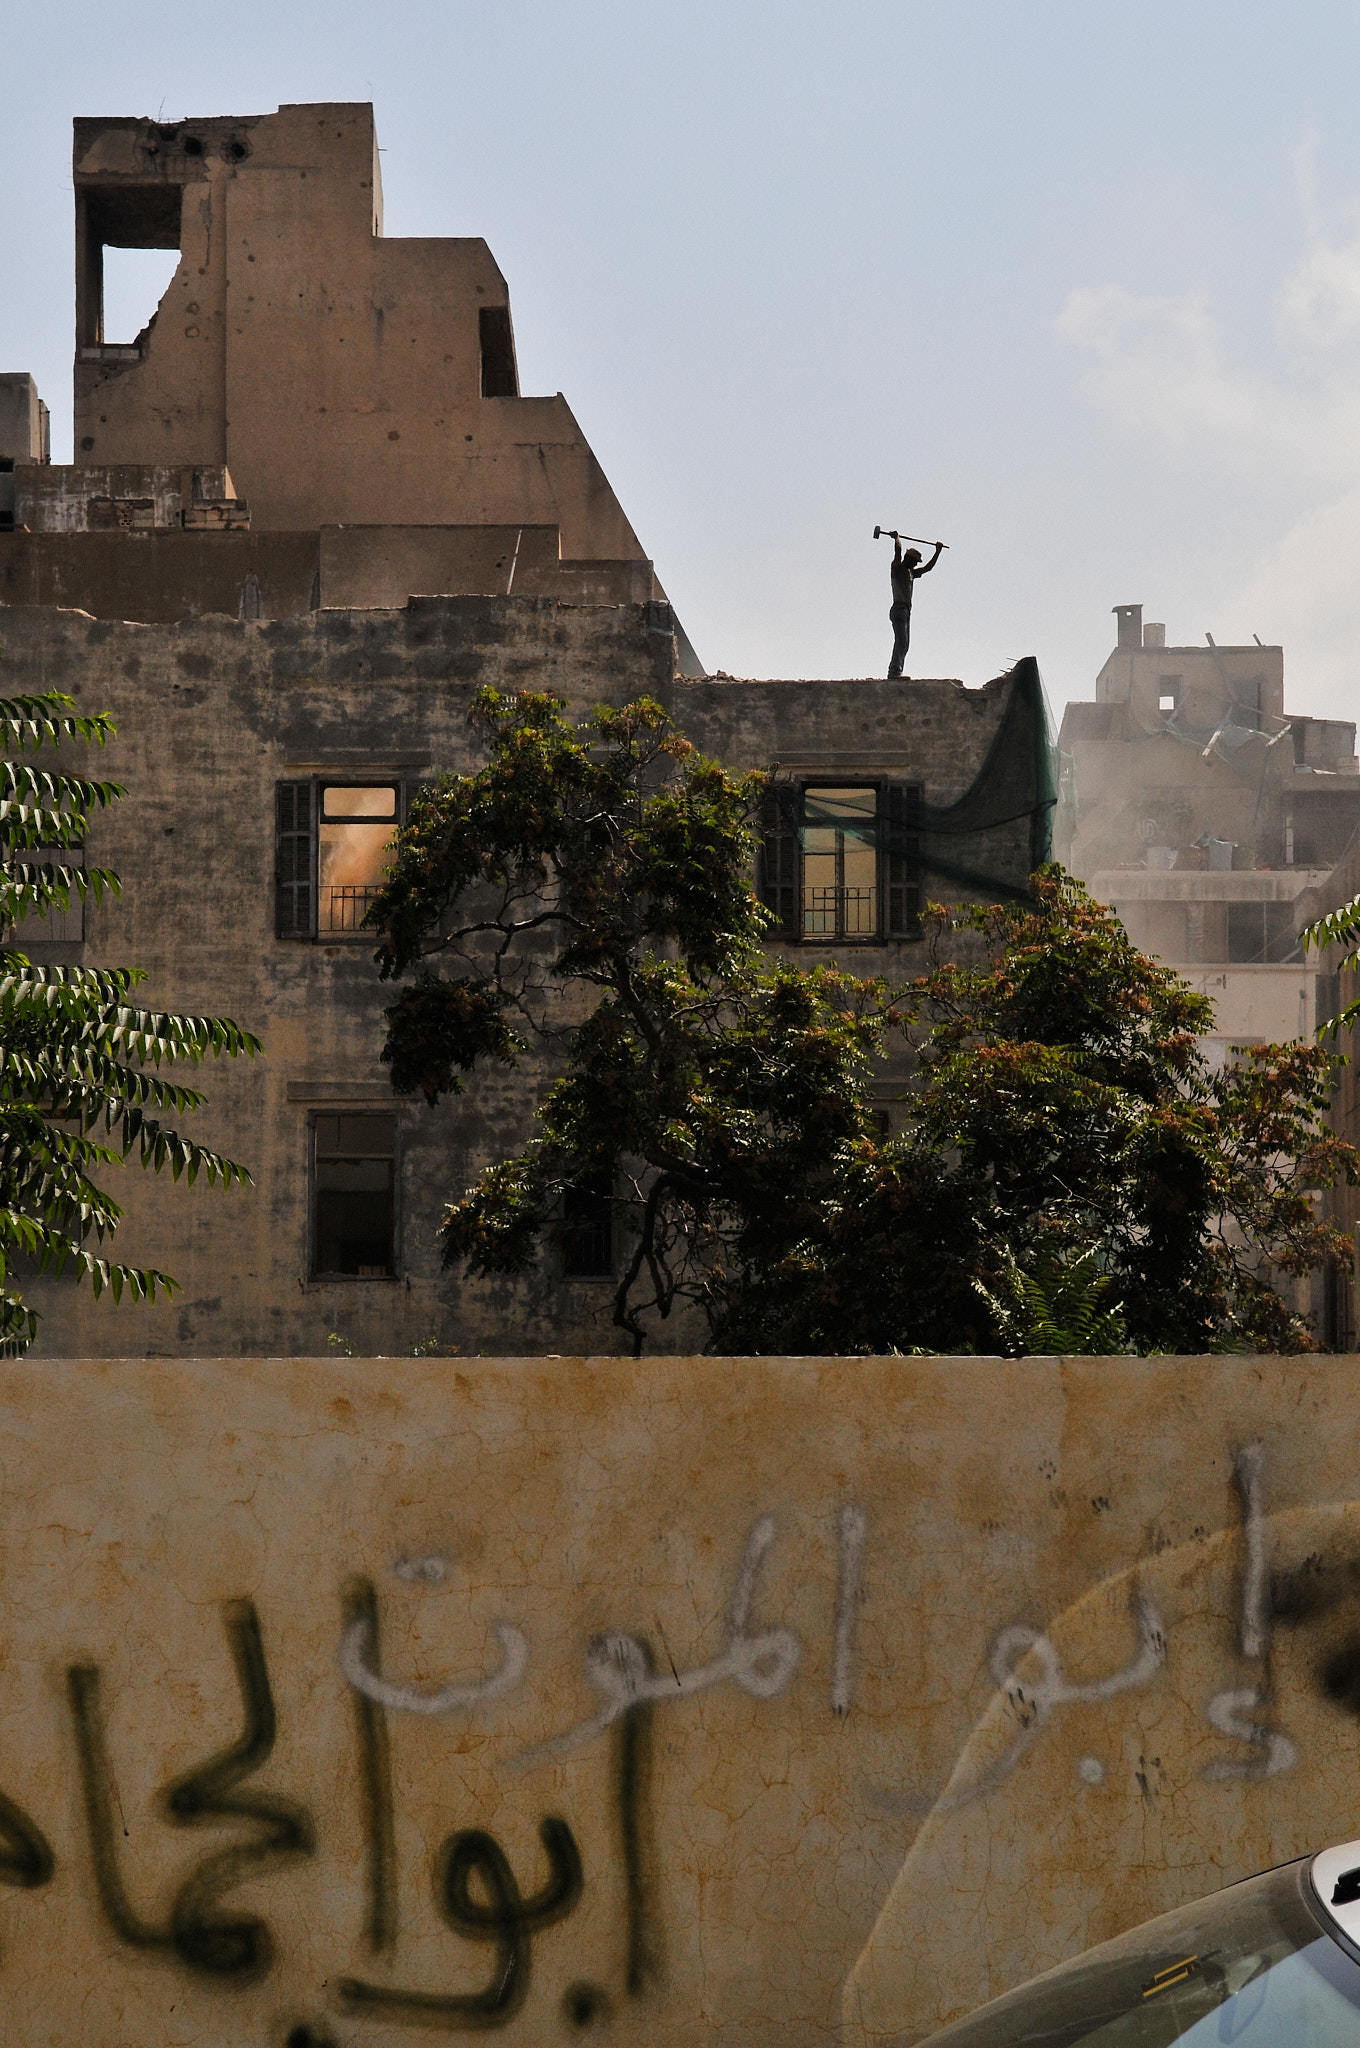 A worker destroys a traditional Lebanese building. Since 2000, Beirut has seen a wave of demolition of its traditional houses to make place for towers. Beirut, 2009.